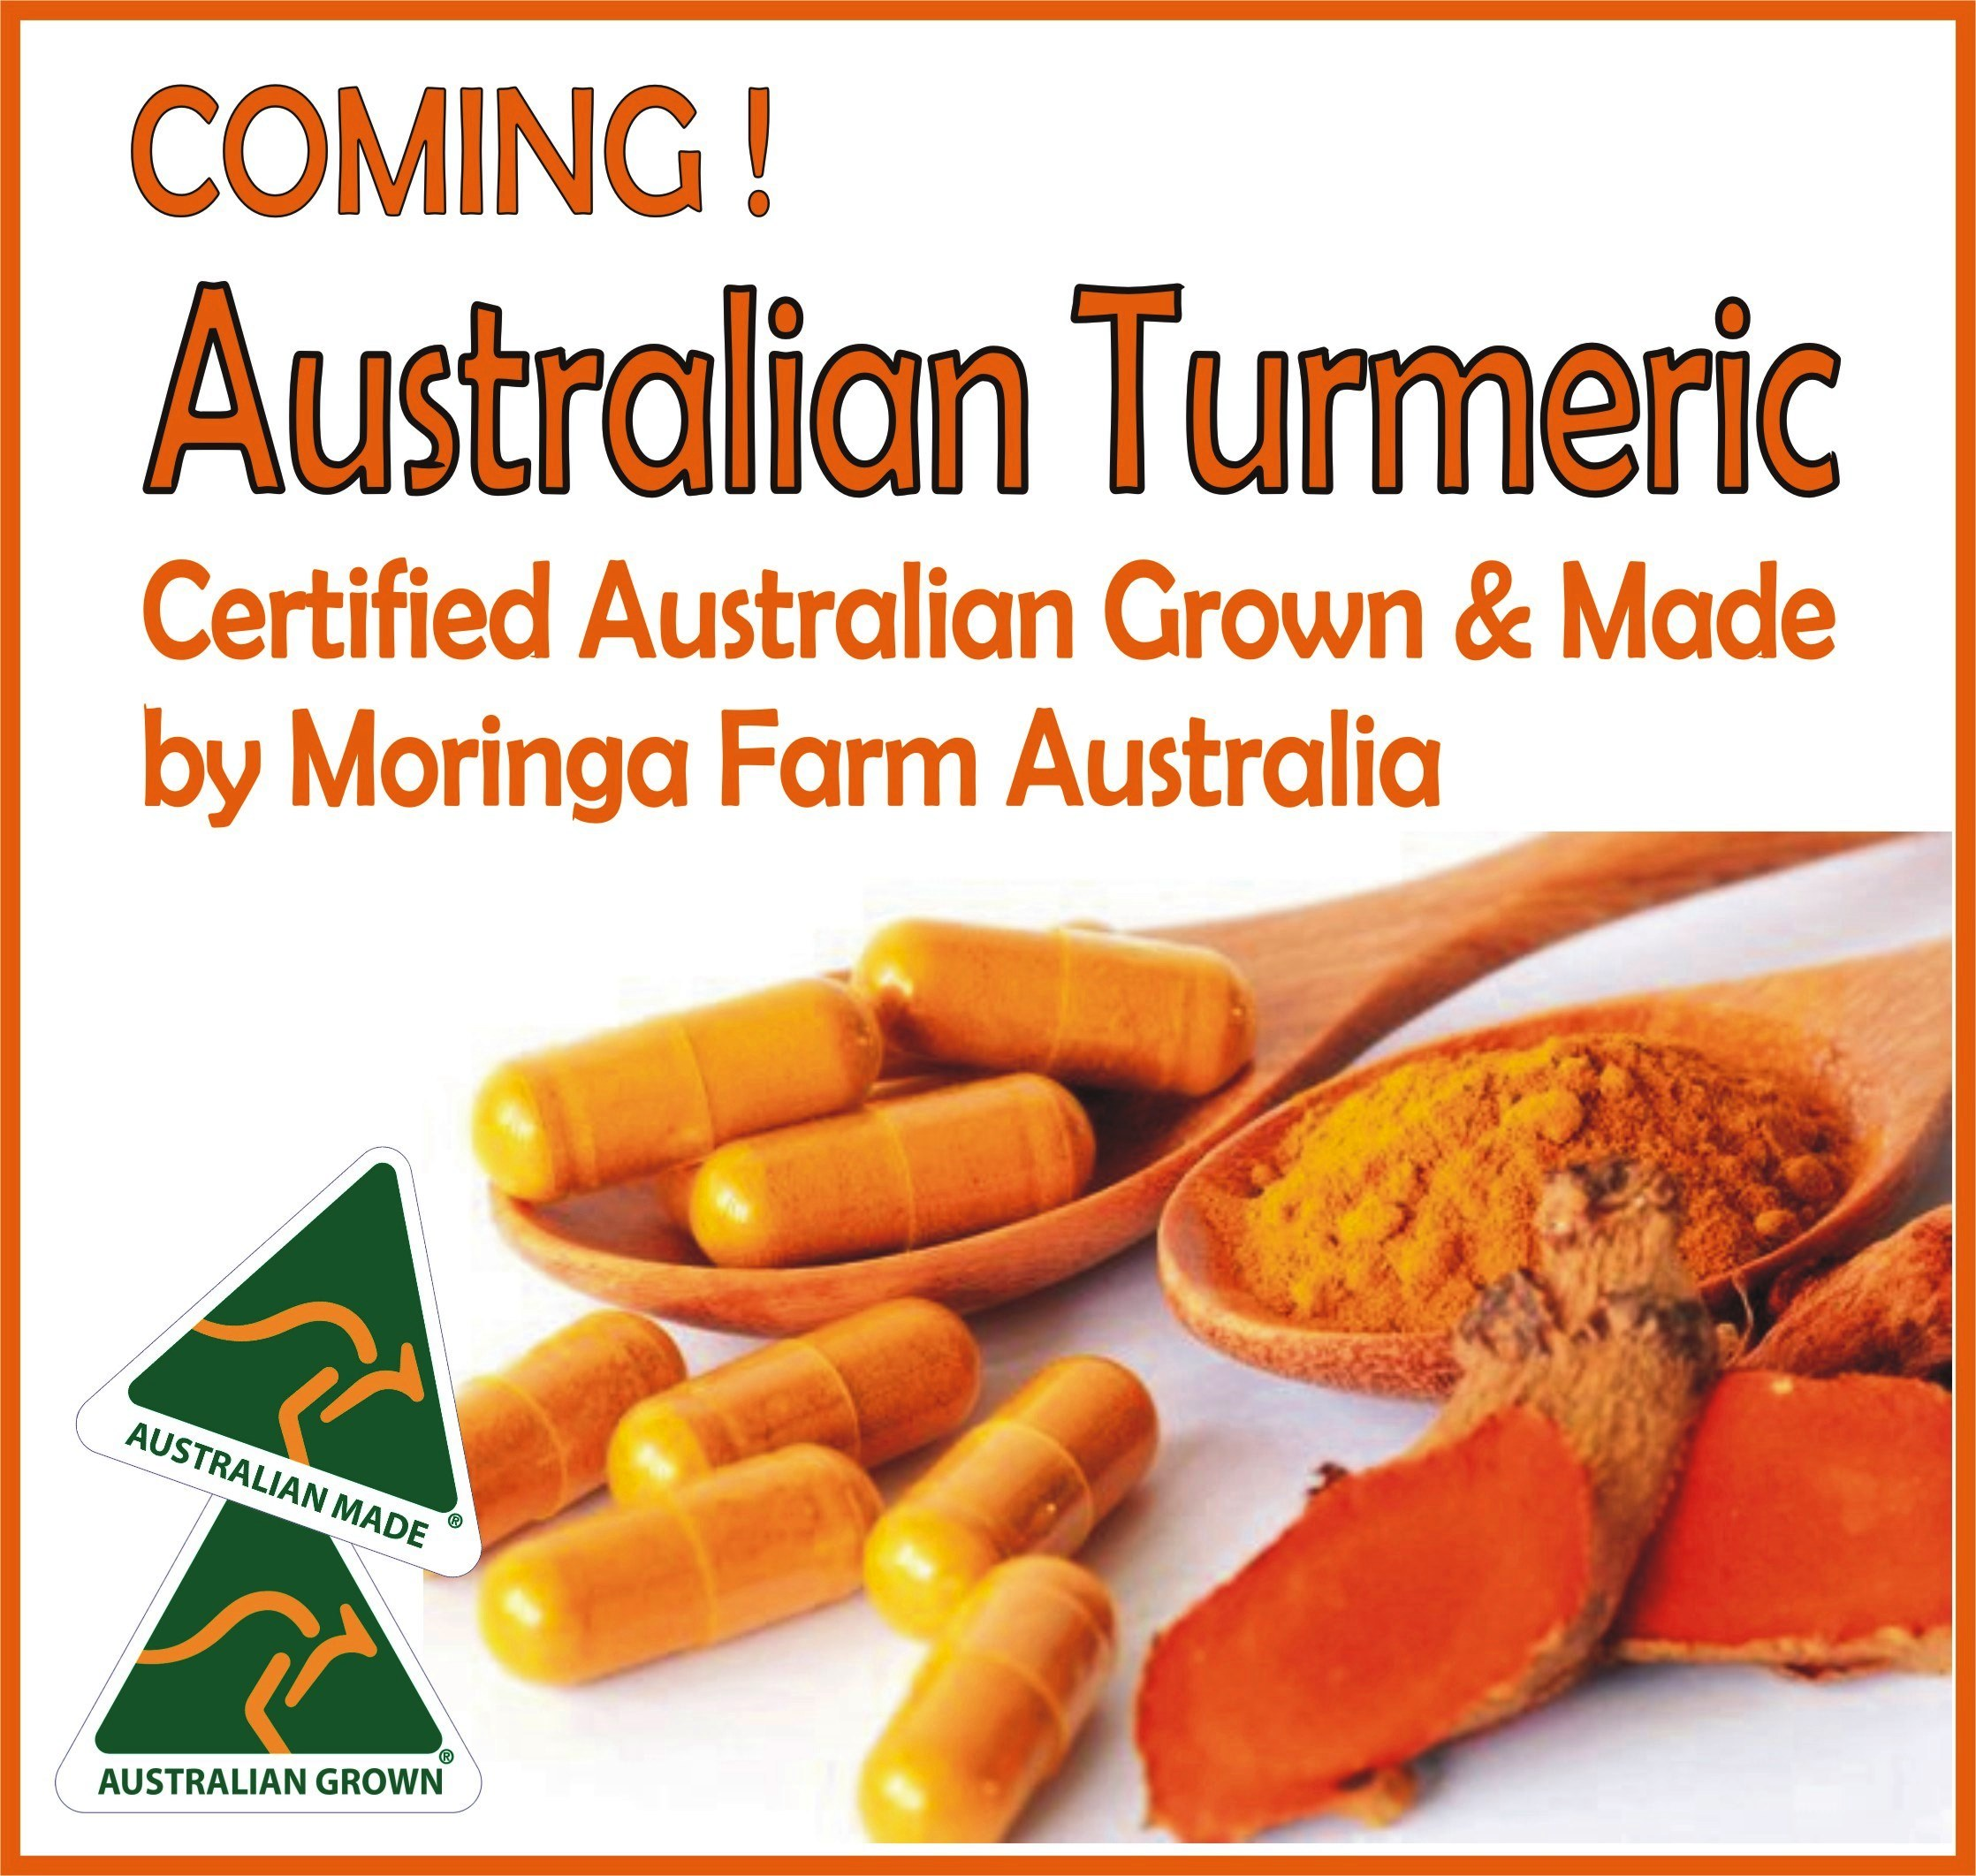 AUSTRALIAN TURMERIC from Moringa Farm Australia ( Retail quantities not yet available)